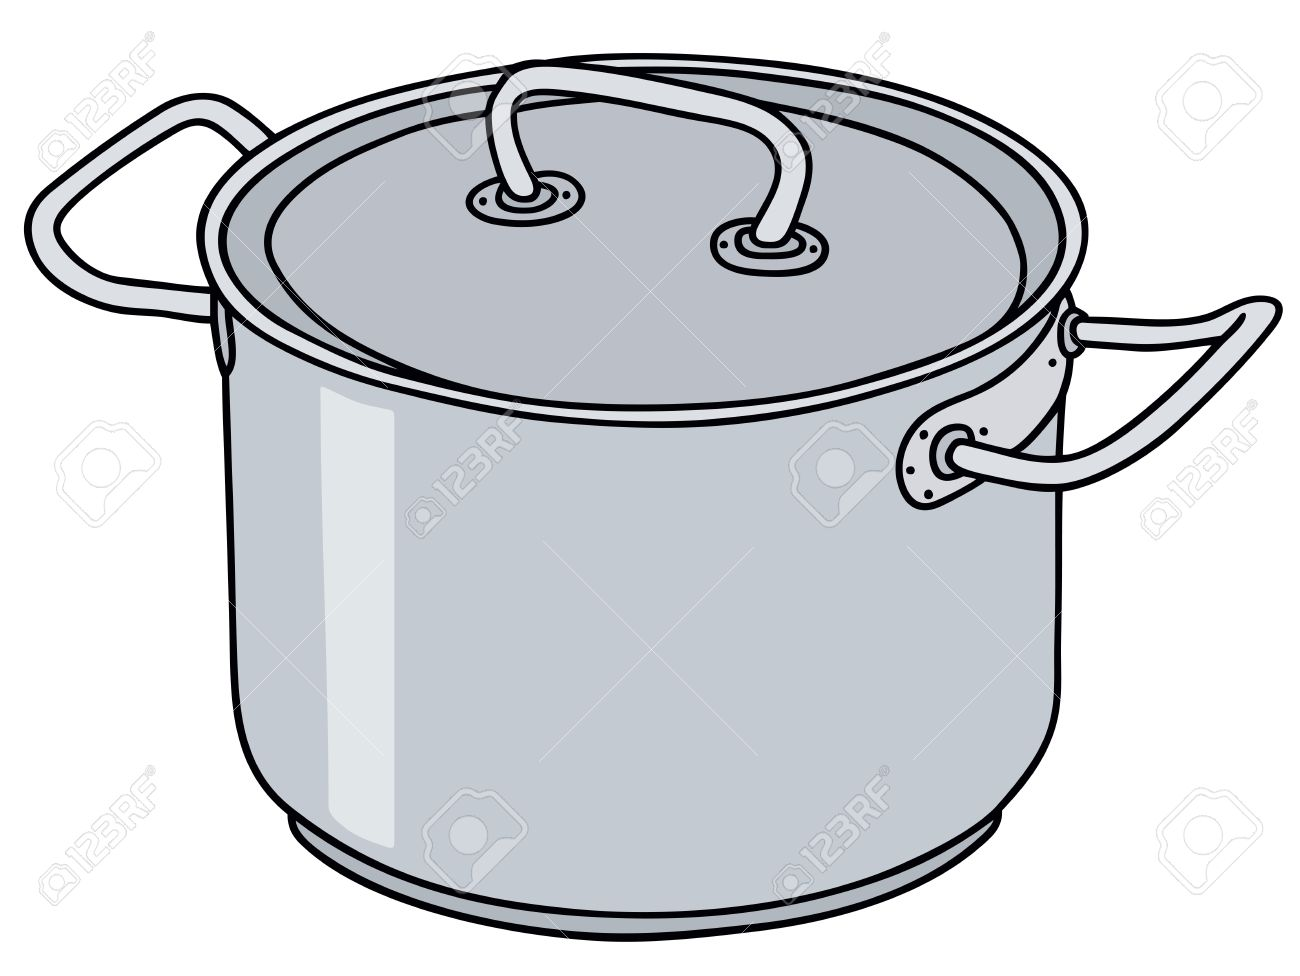 1300x976 Hand Drawing Of A Stainless Steel Pot Royalty Free Cliparts